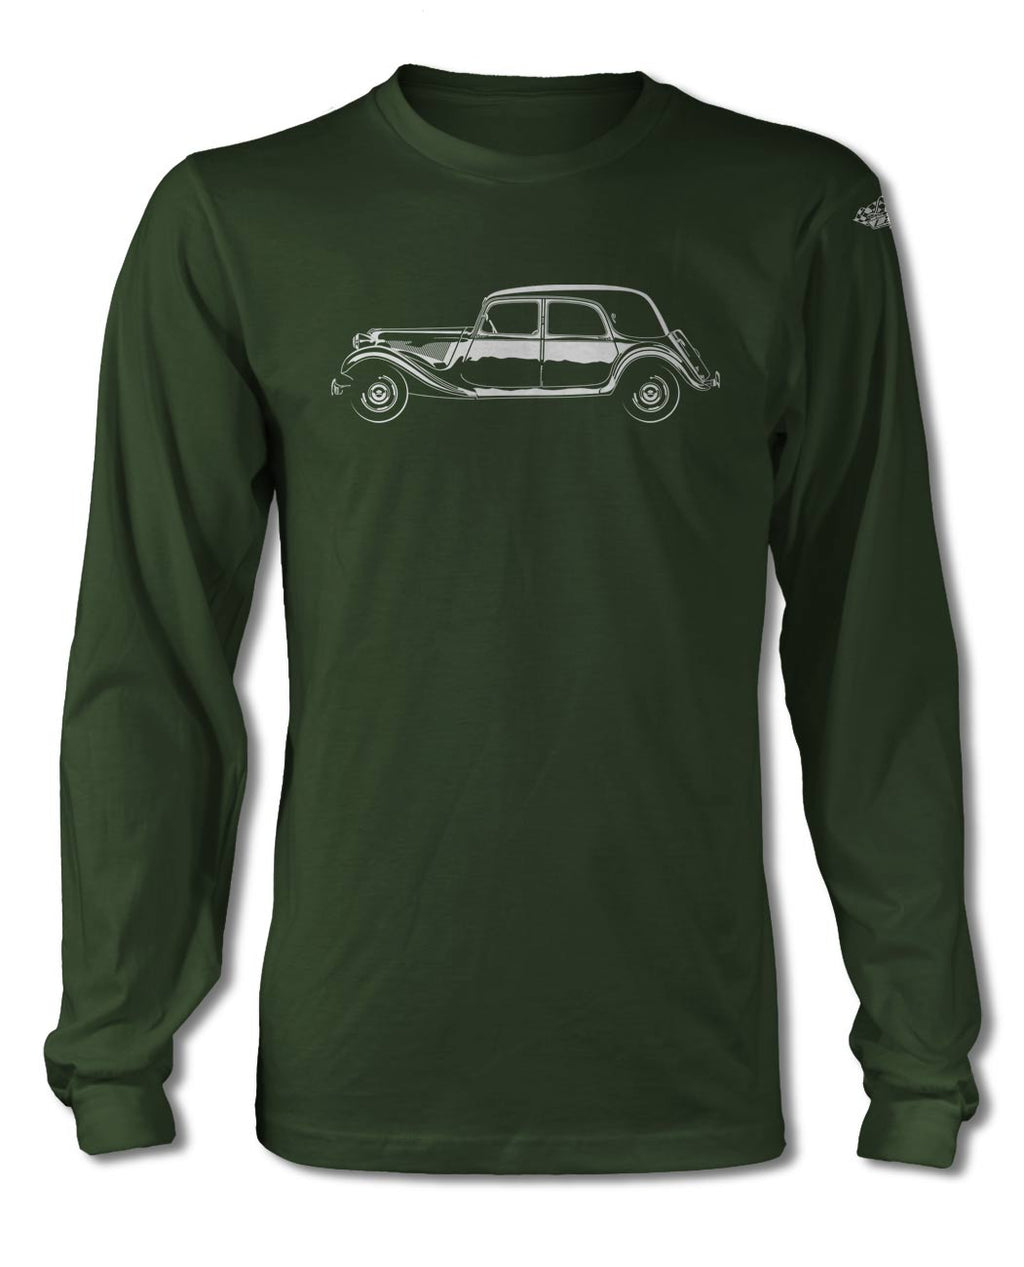 Citroen Traction Avant 11B 1934 – 1957 T-Shirt - Long Sleeves - Side View